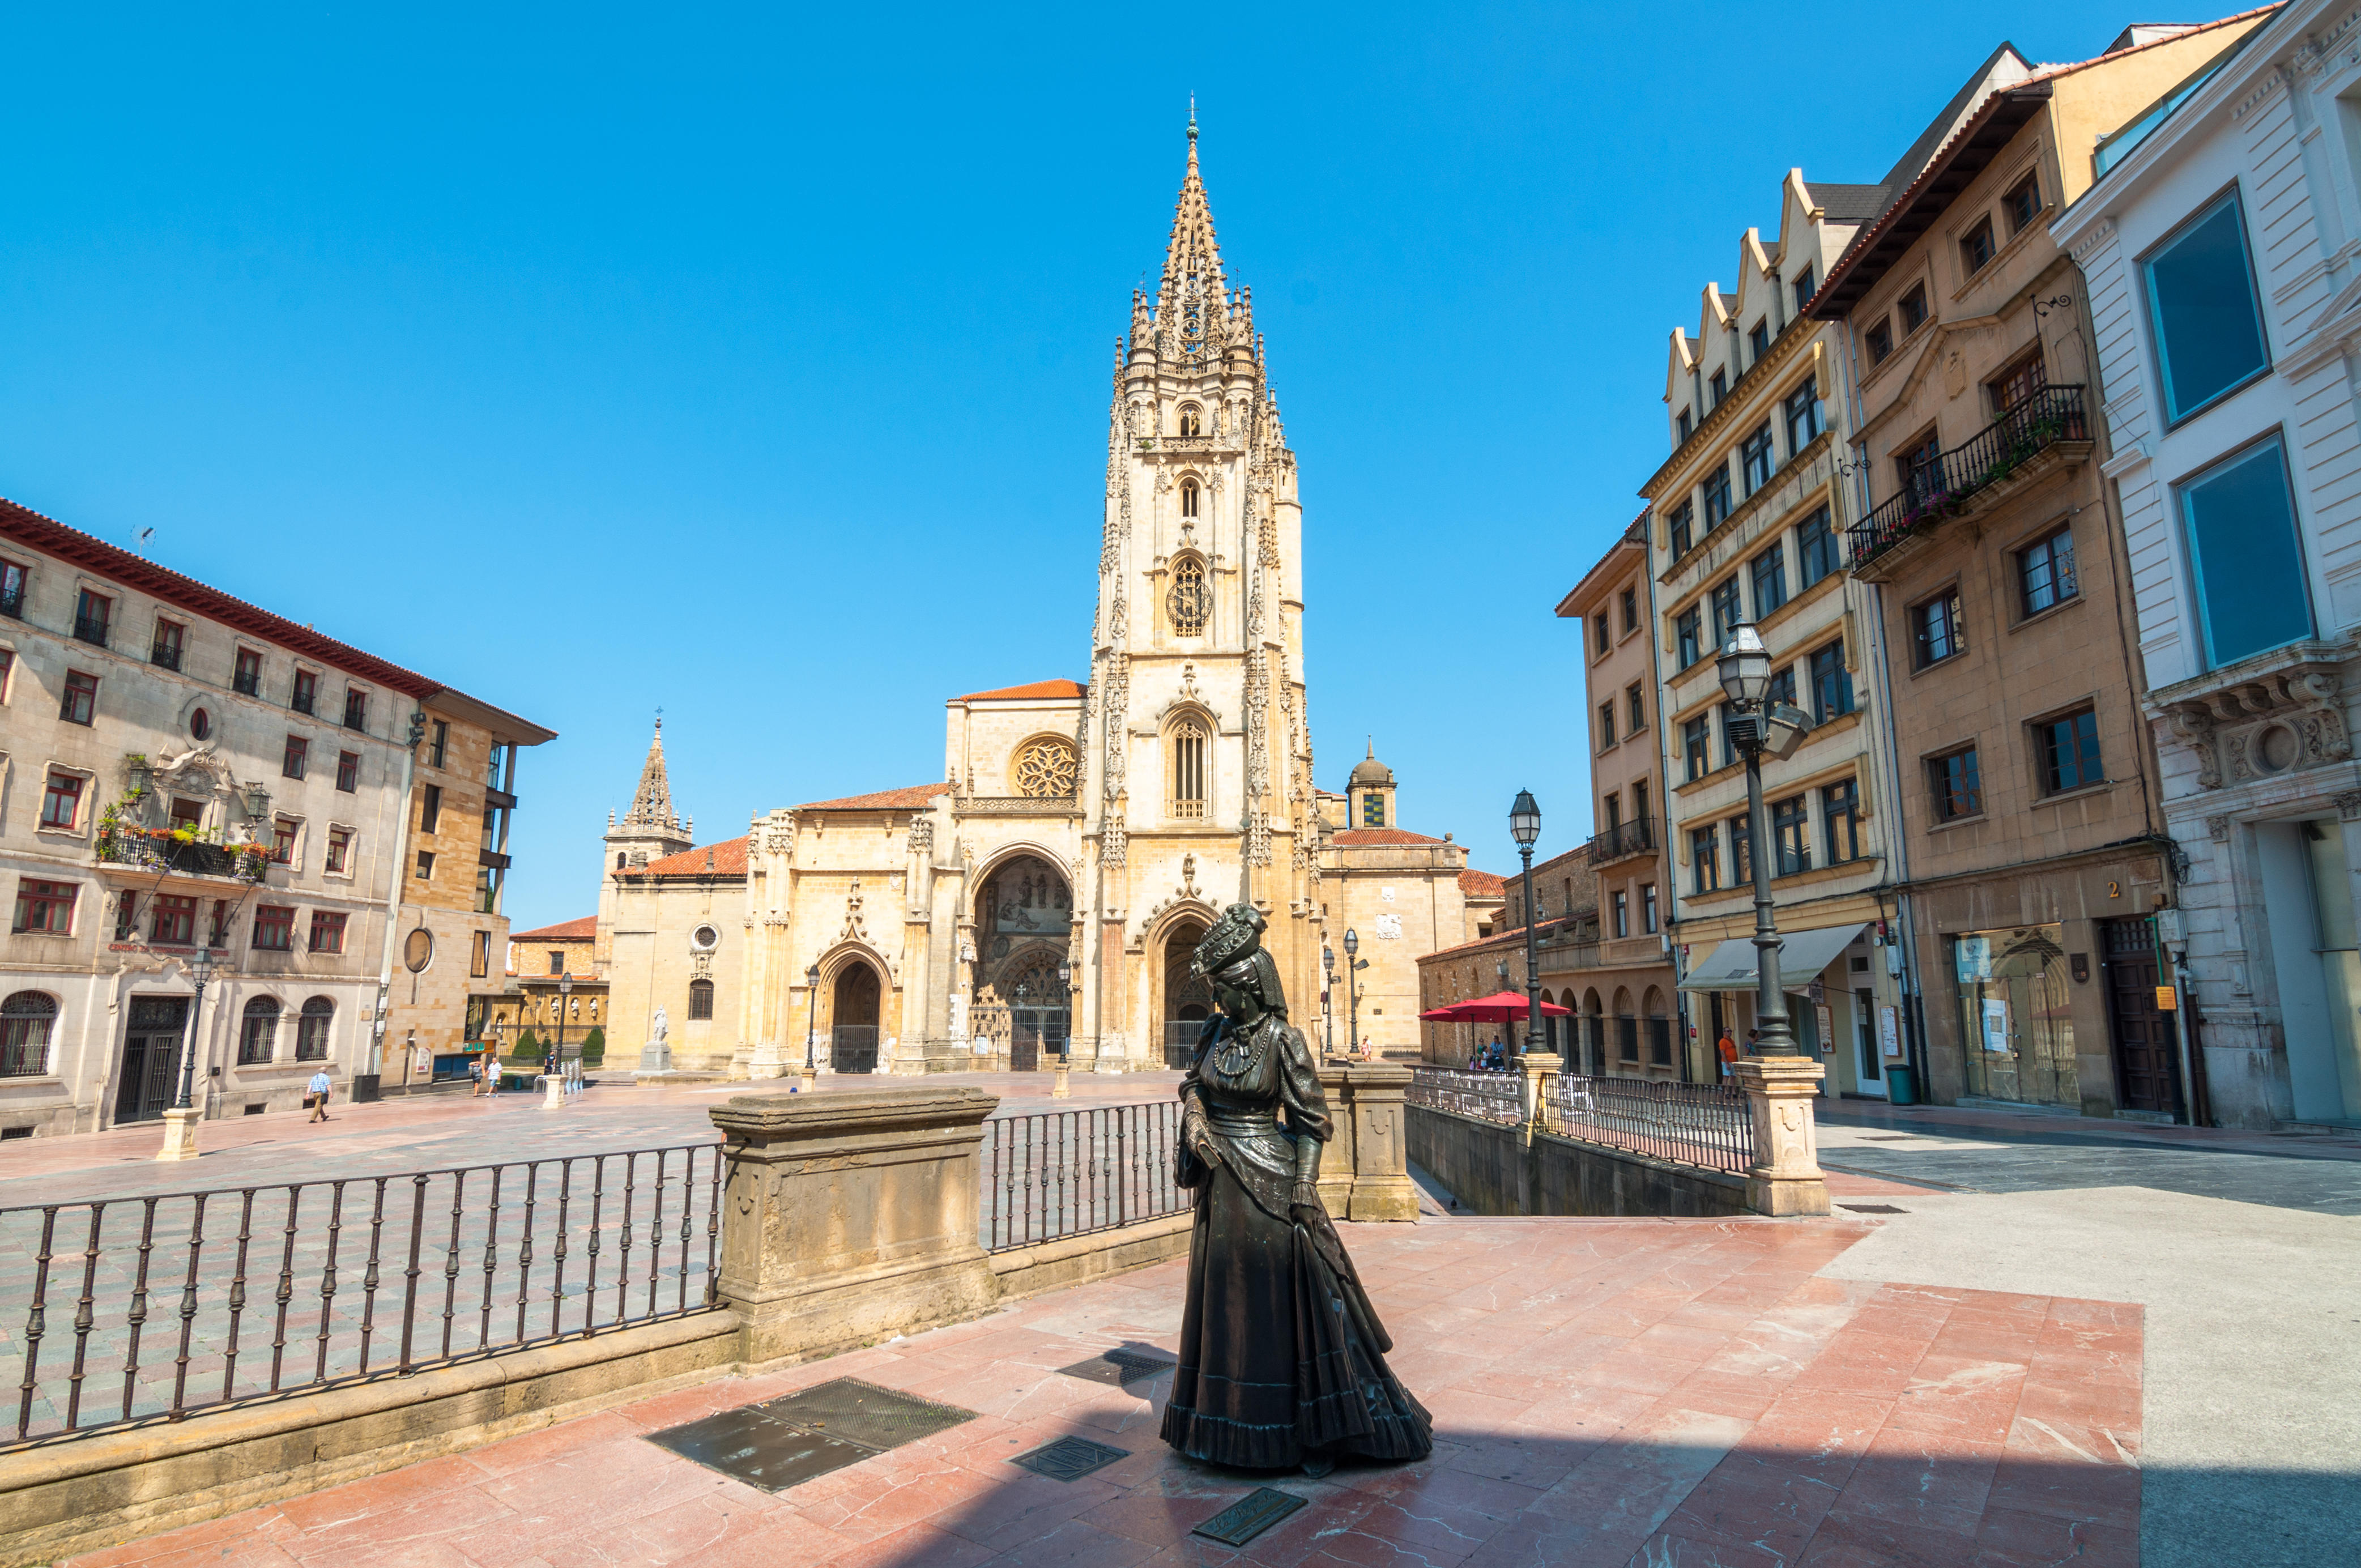 Oviedo, Spain - Monday, August 15, 2016: Holy Saviour Cathedral square